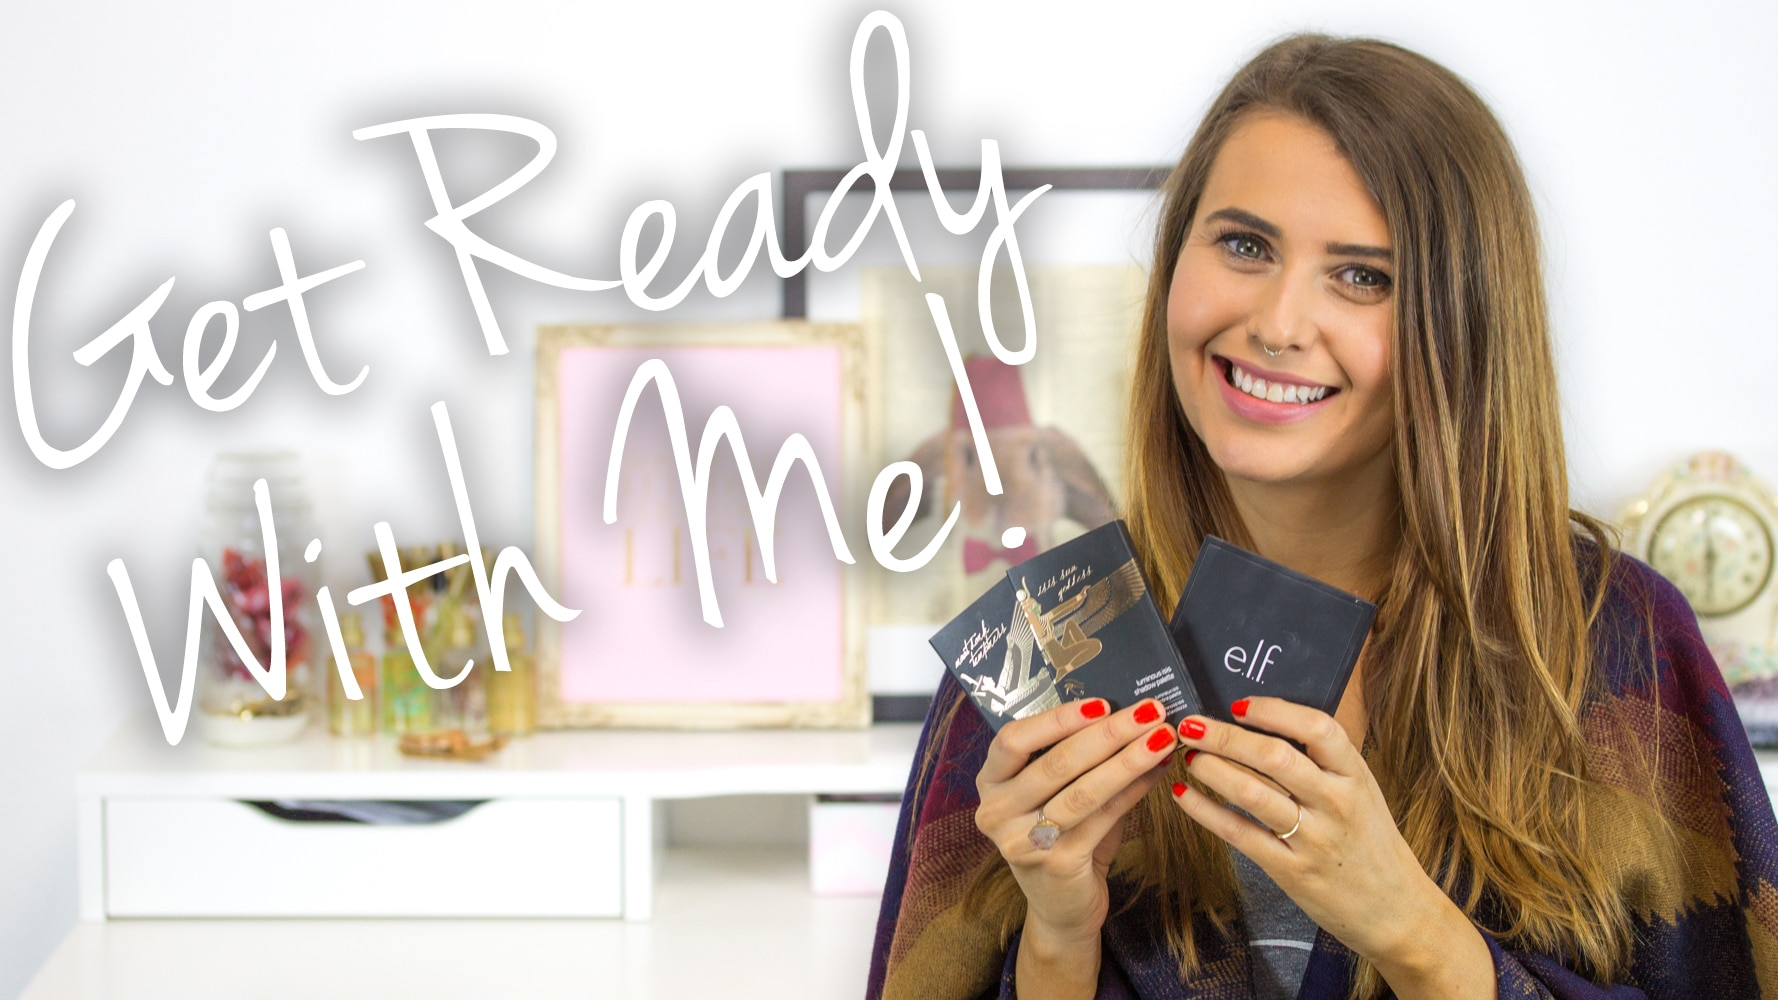 Get Ready With Me - Fall Bronze Eye & Glowing Skin